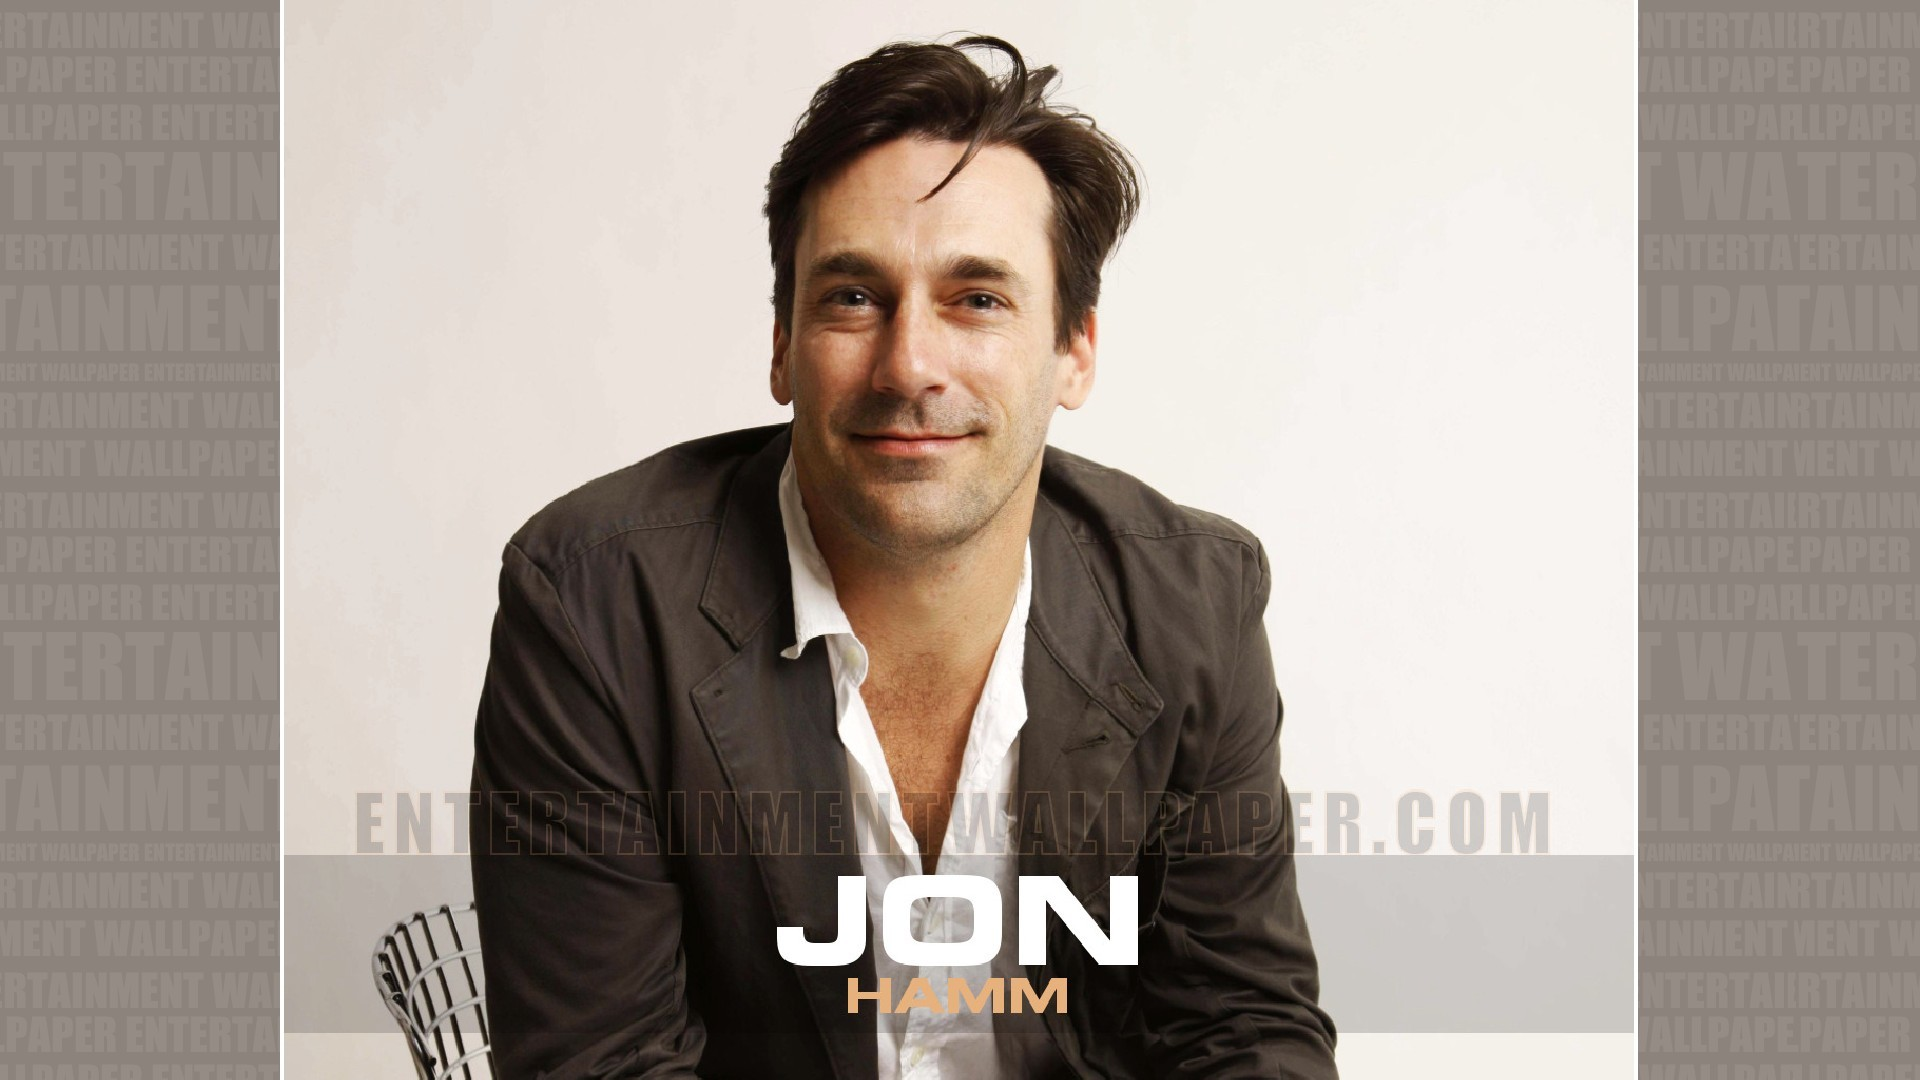 Res: 1920x1080, Jon Hamm Wallpaper - Original size, download now.